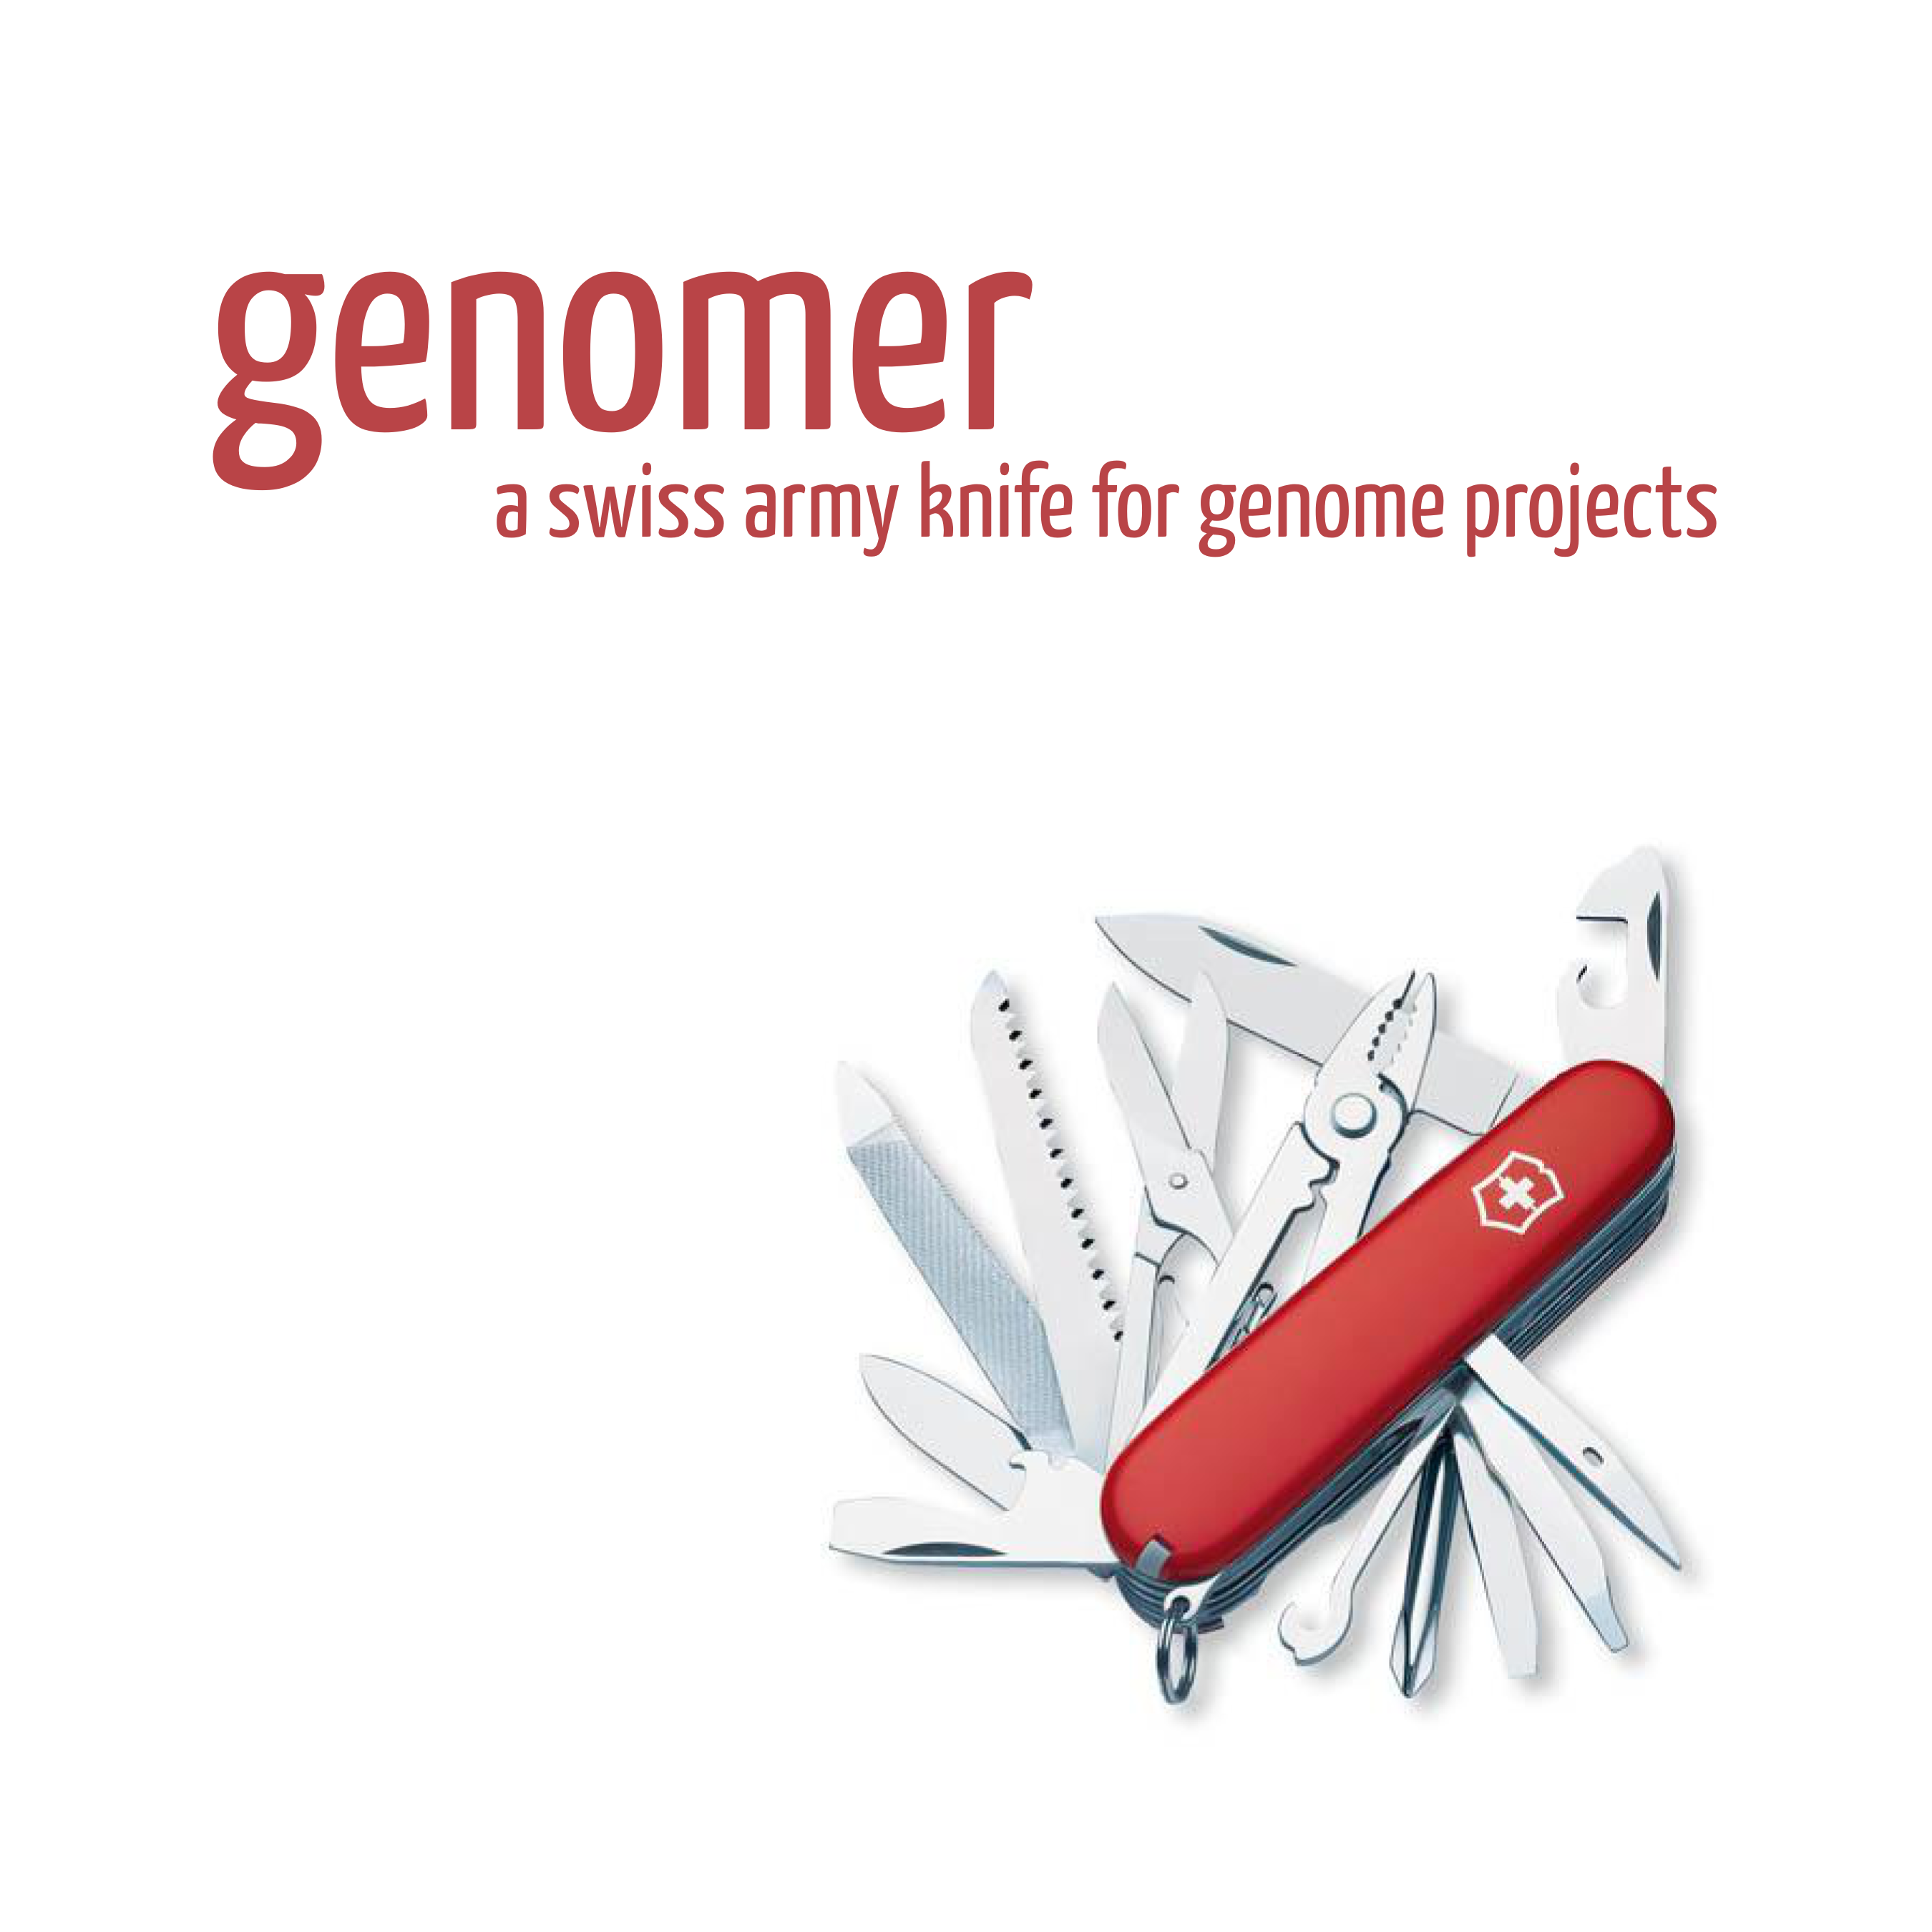 Genomer: A swiss army knife for genome projects